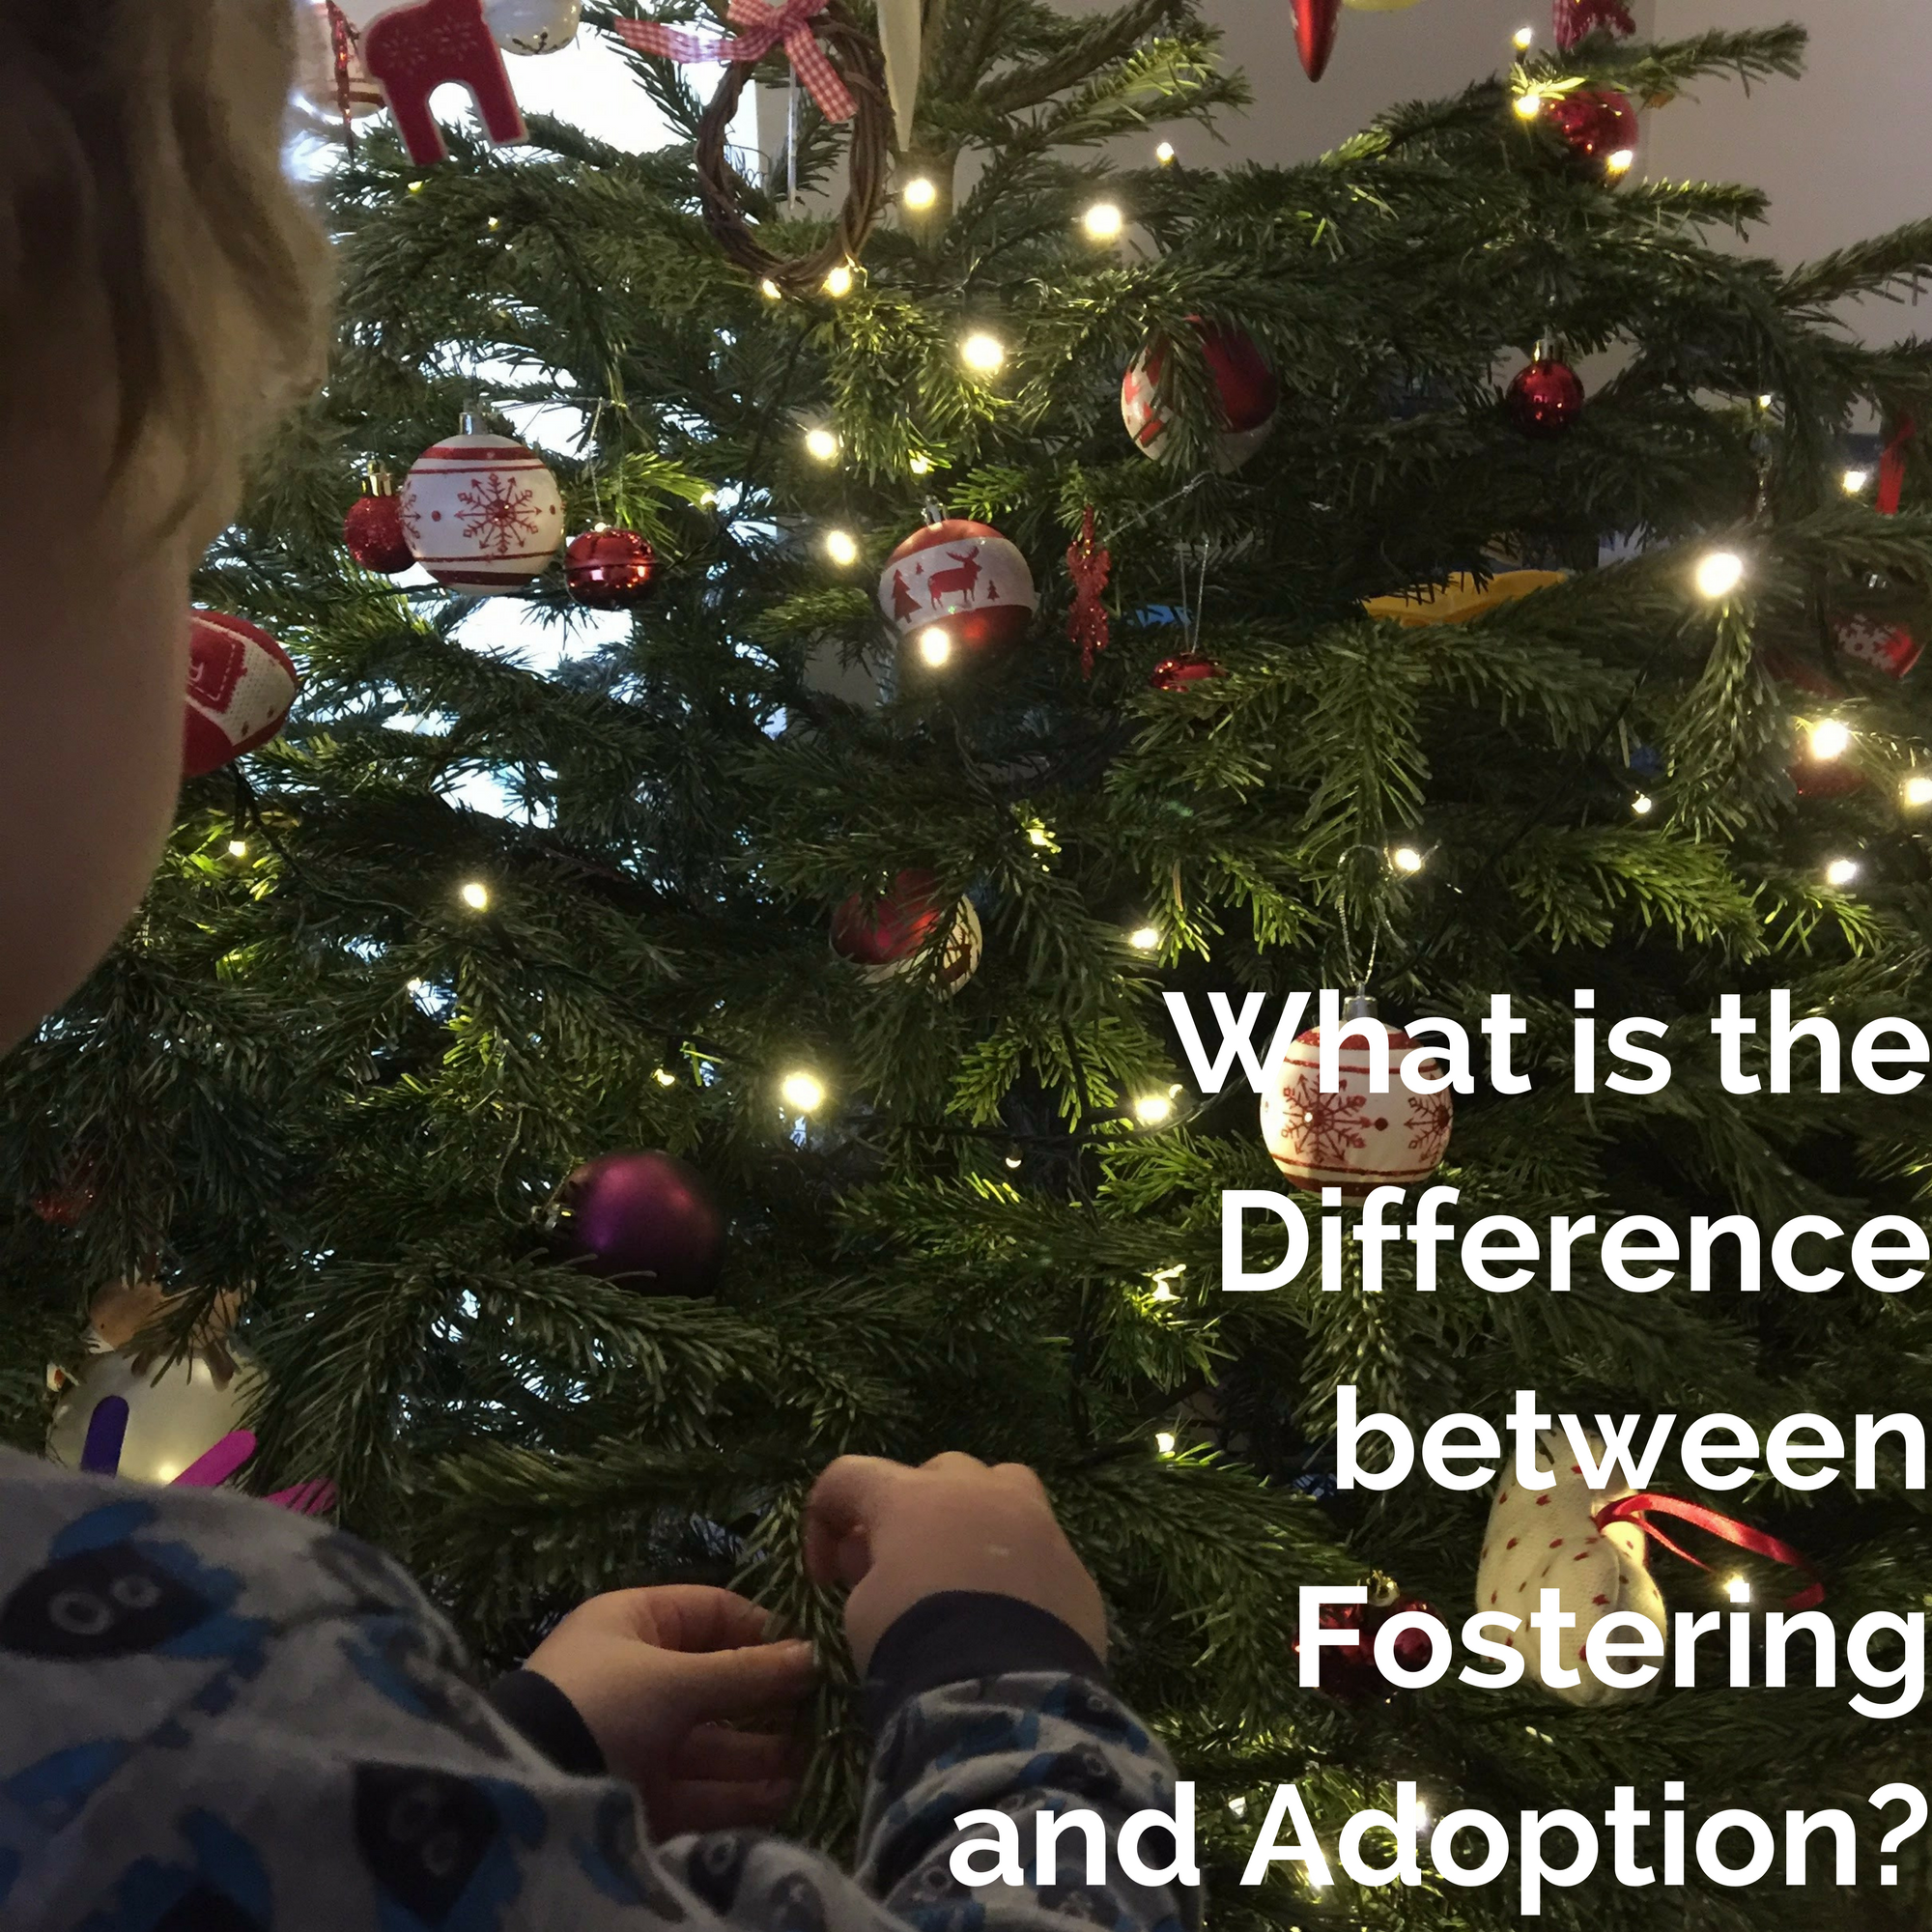 What is the Difference between Fostering and Adoption?